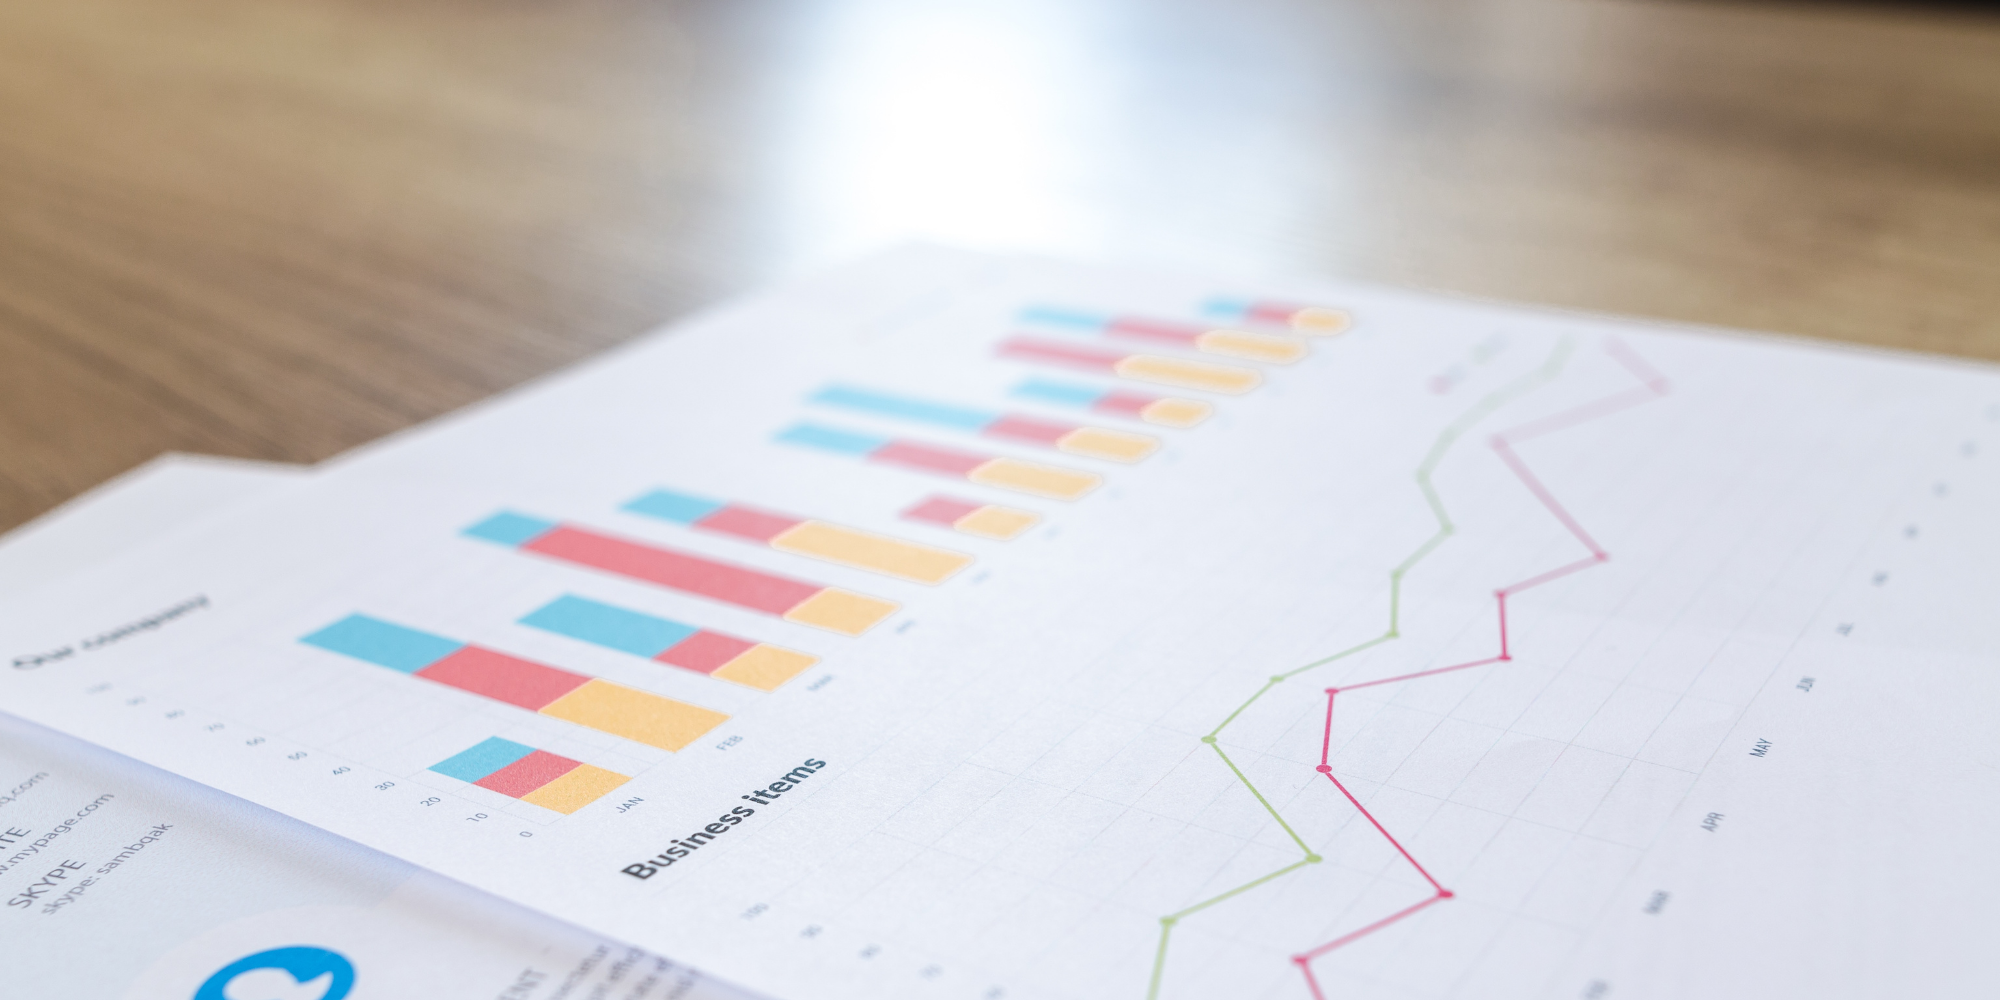 Nonprofit Virtual Consulting financial reports